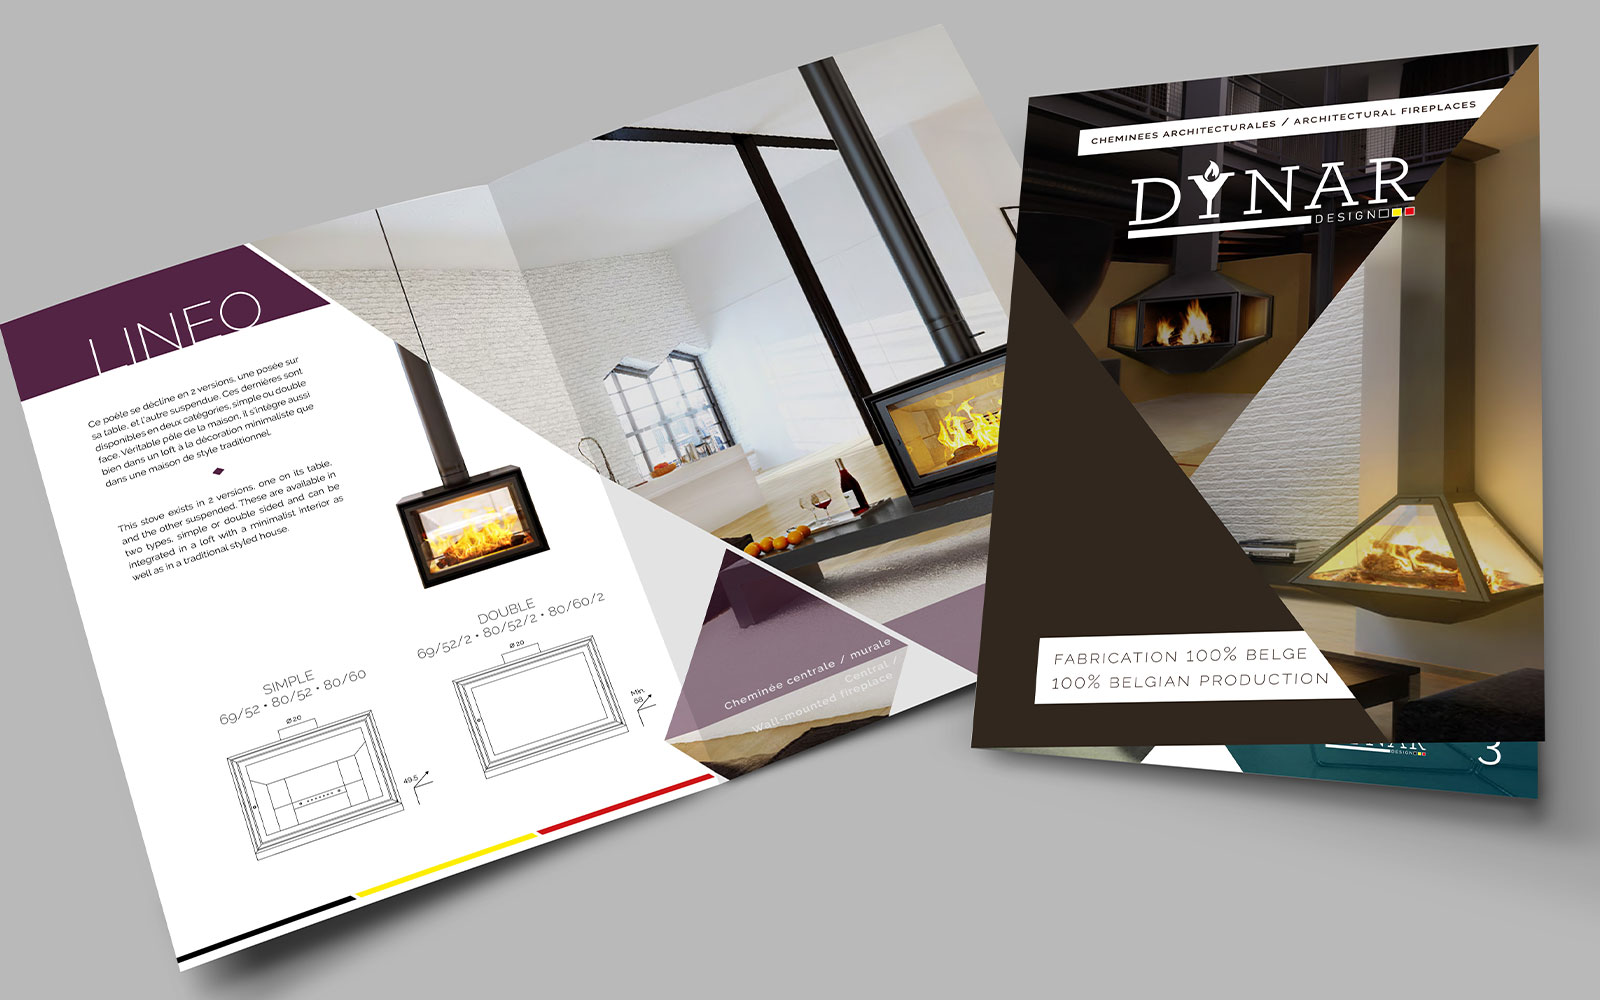 BL-Graphics - Dynar Design - catalogue